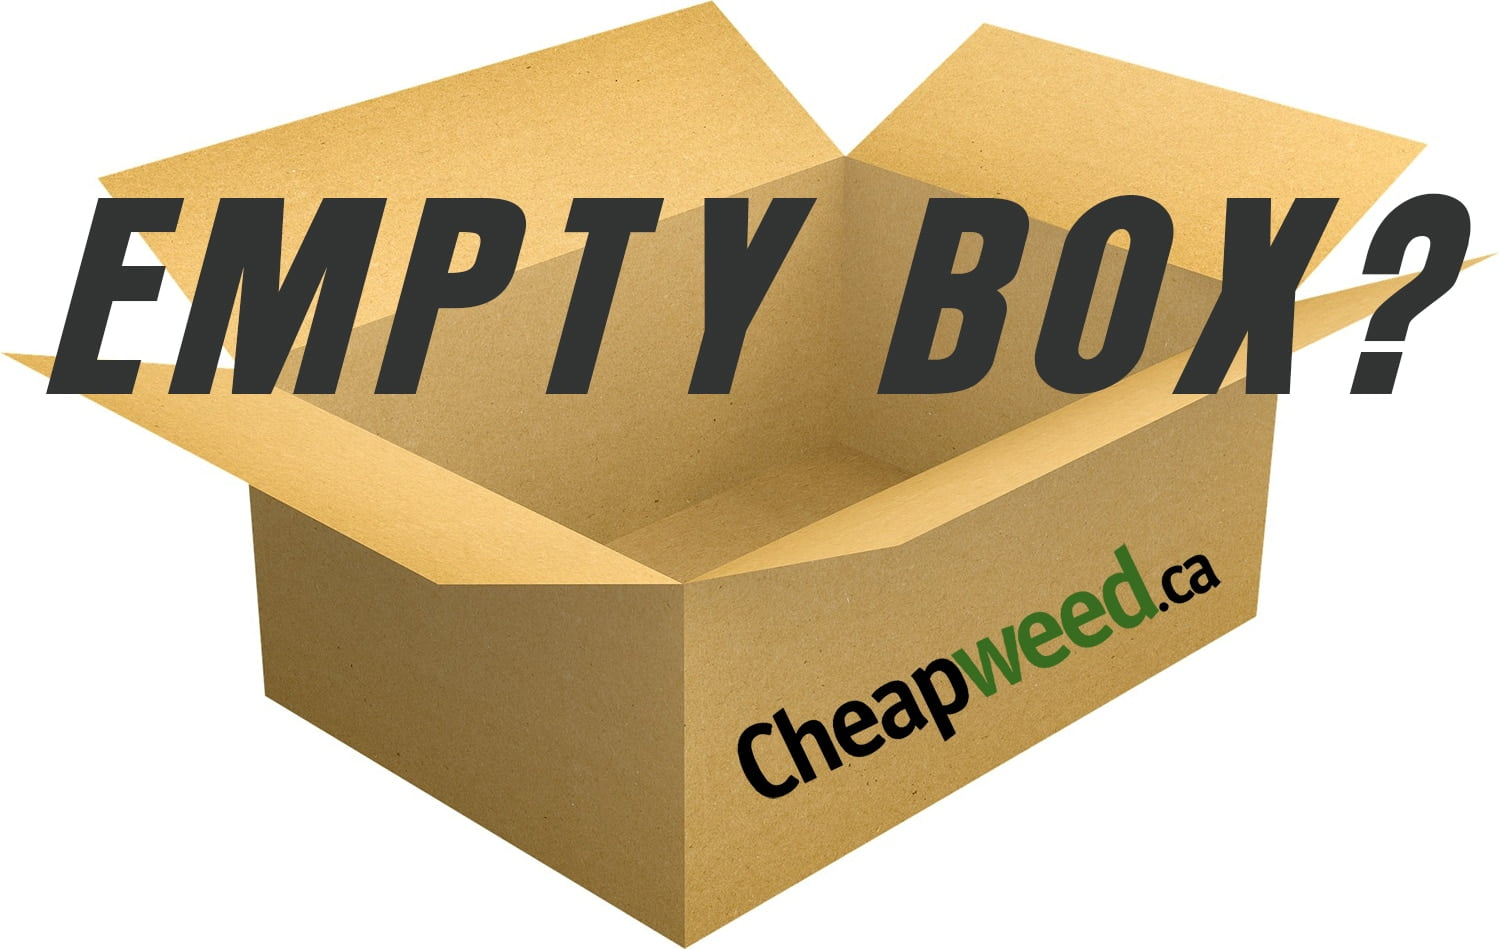 Missing product from CheapWeed ca? Empty box? What is going on?